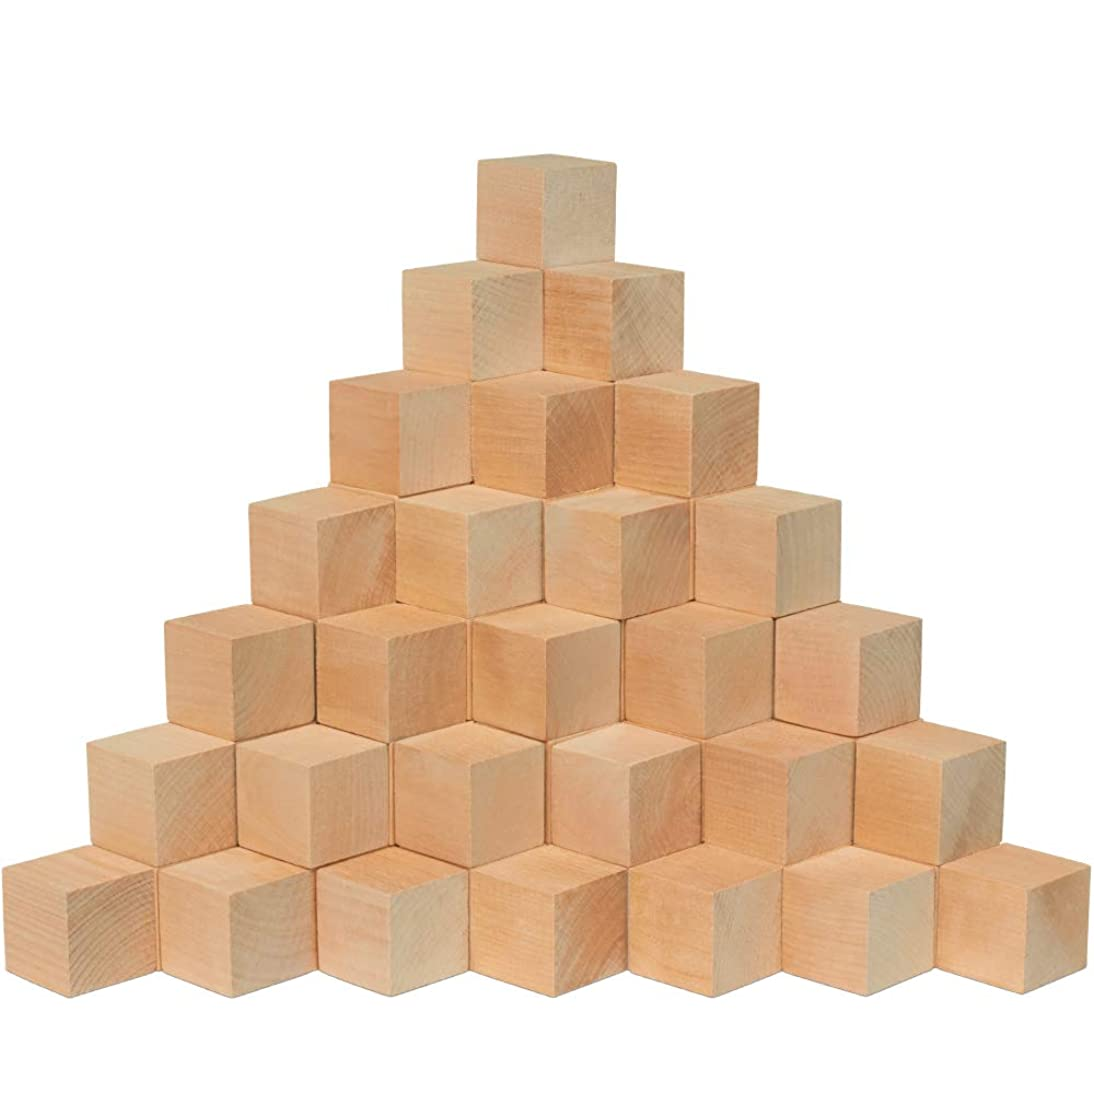 Wood Blocks, 1-1/2 Inch Cubes, 50 Pack | Unfinished Wooden Toy Craft Supply Kit for Kids & Adults, DIY Art Projects, ABC Toys | Woodpeckers Crafts